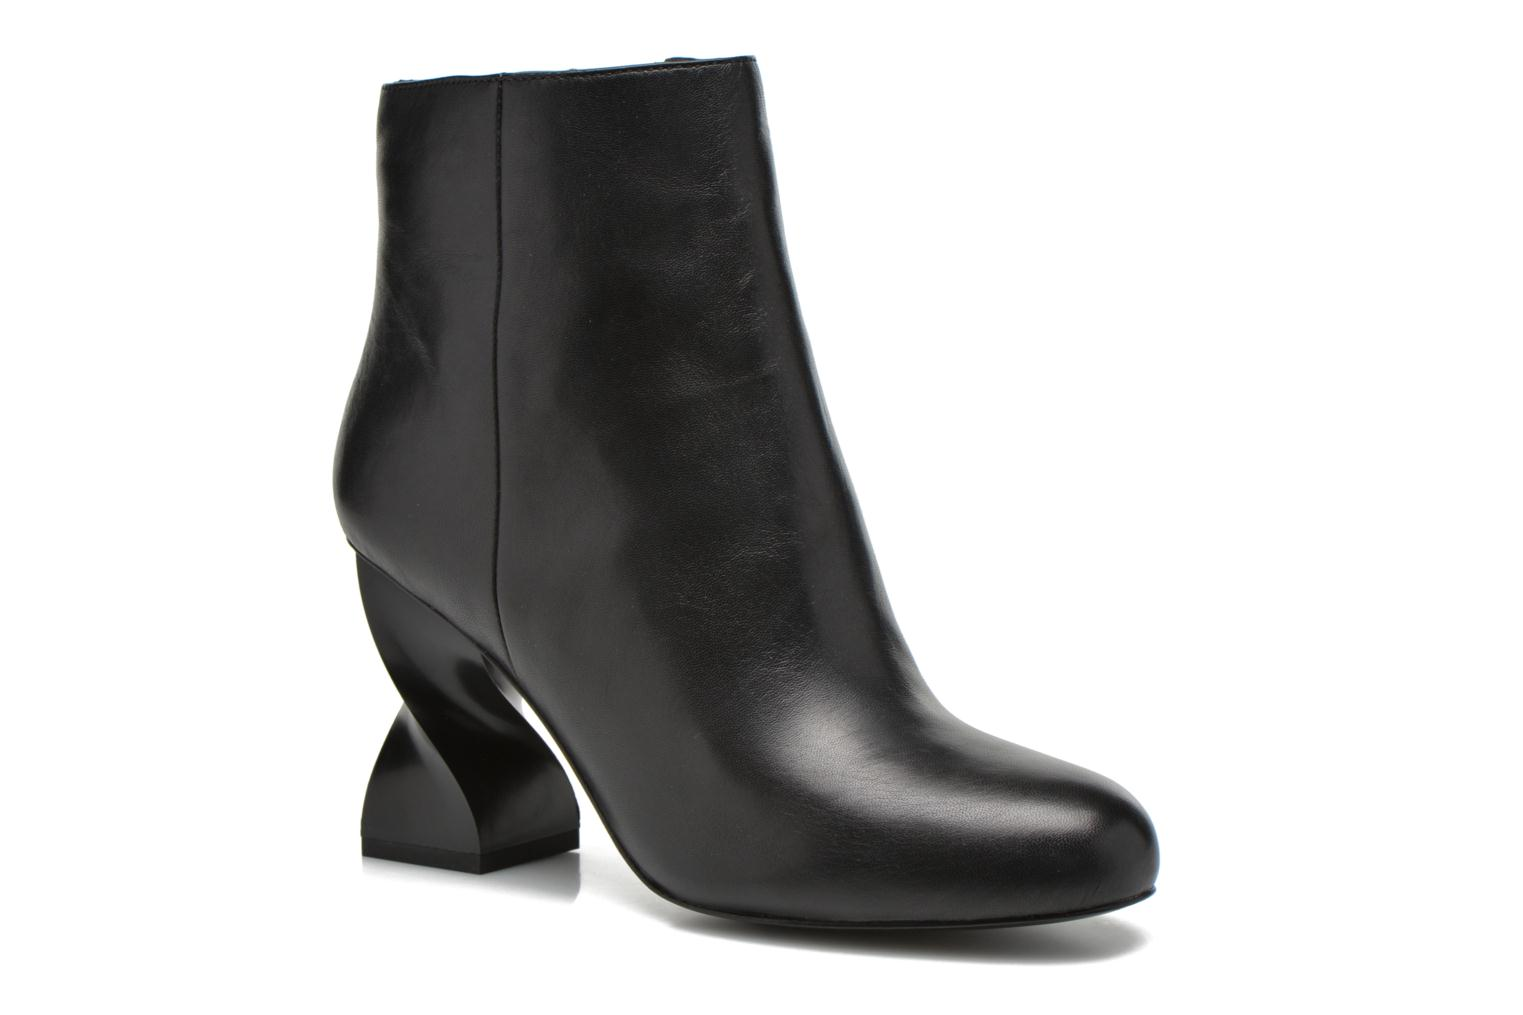 Bottines et boots Opening Ceremony ELOYSE TWISTED HIGH HEEL BOOTIE Noir vue détail/paire